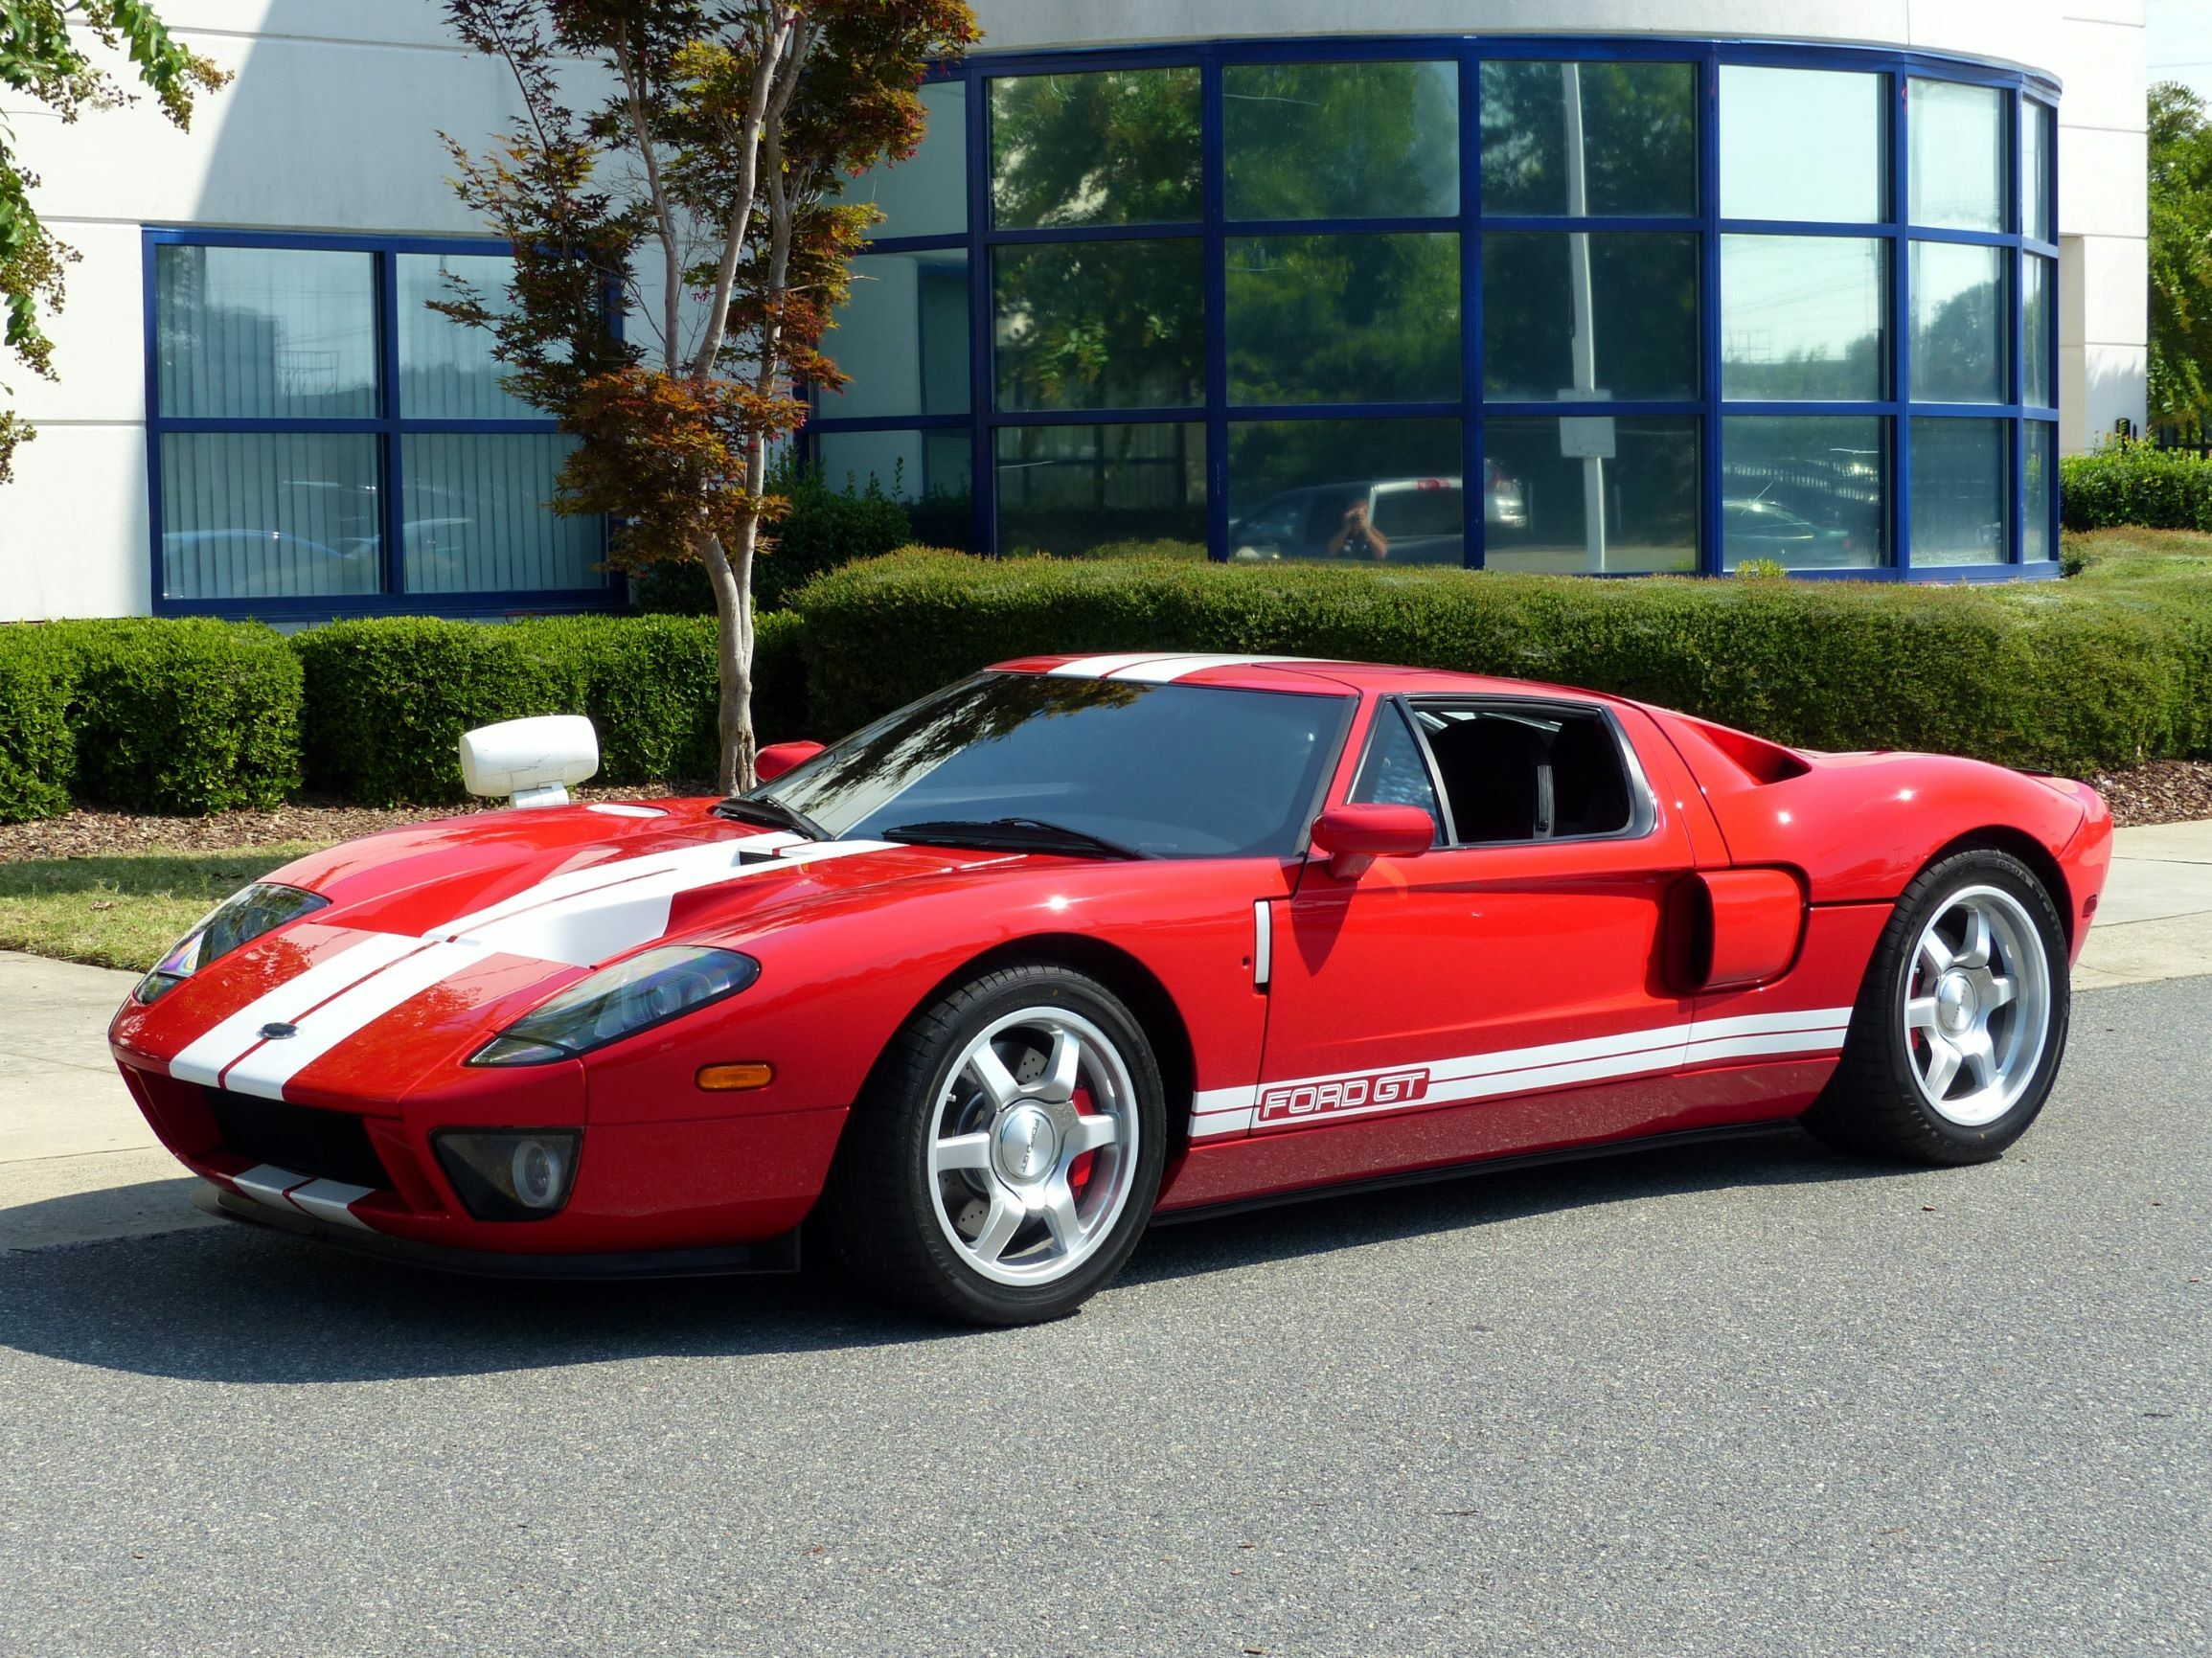 Modern Supercars And Exotics Consigned For Barrett Jackson